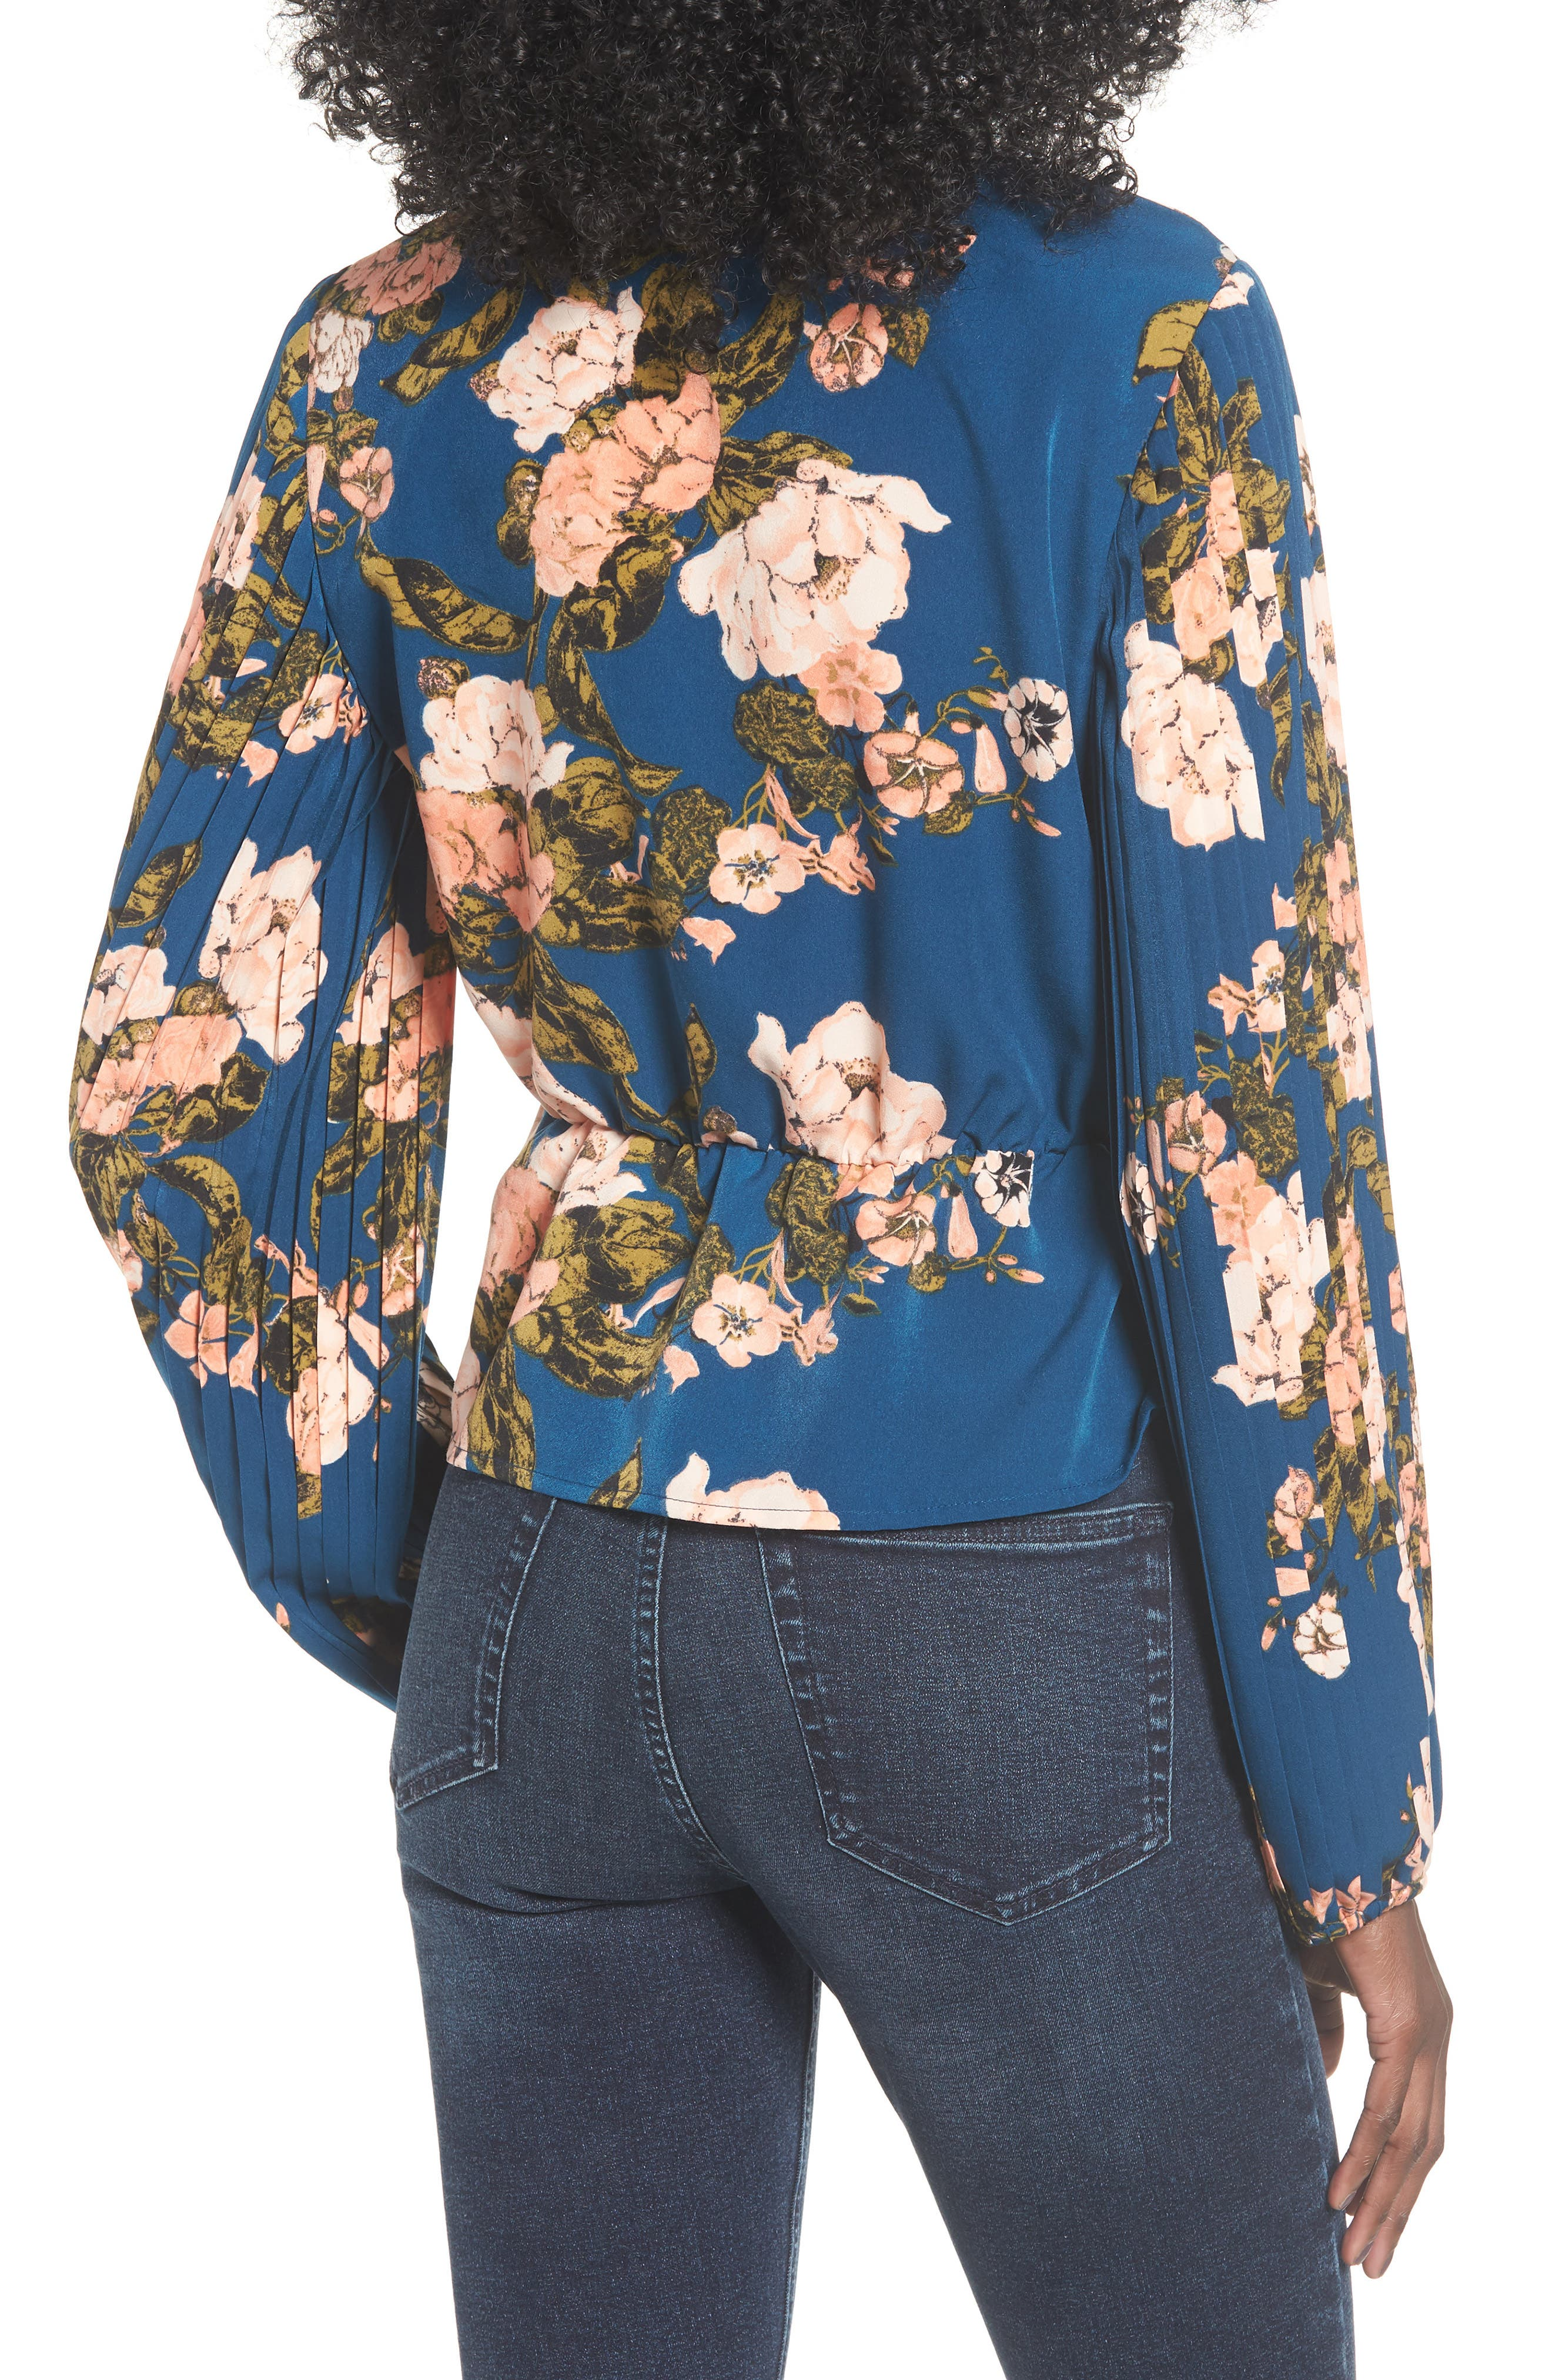 LEITH, Pleated Sleeve Blouse, Alternate thumbnail 2, color, BLUE AURORA TONAL FLORAL